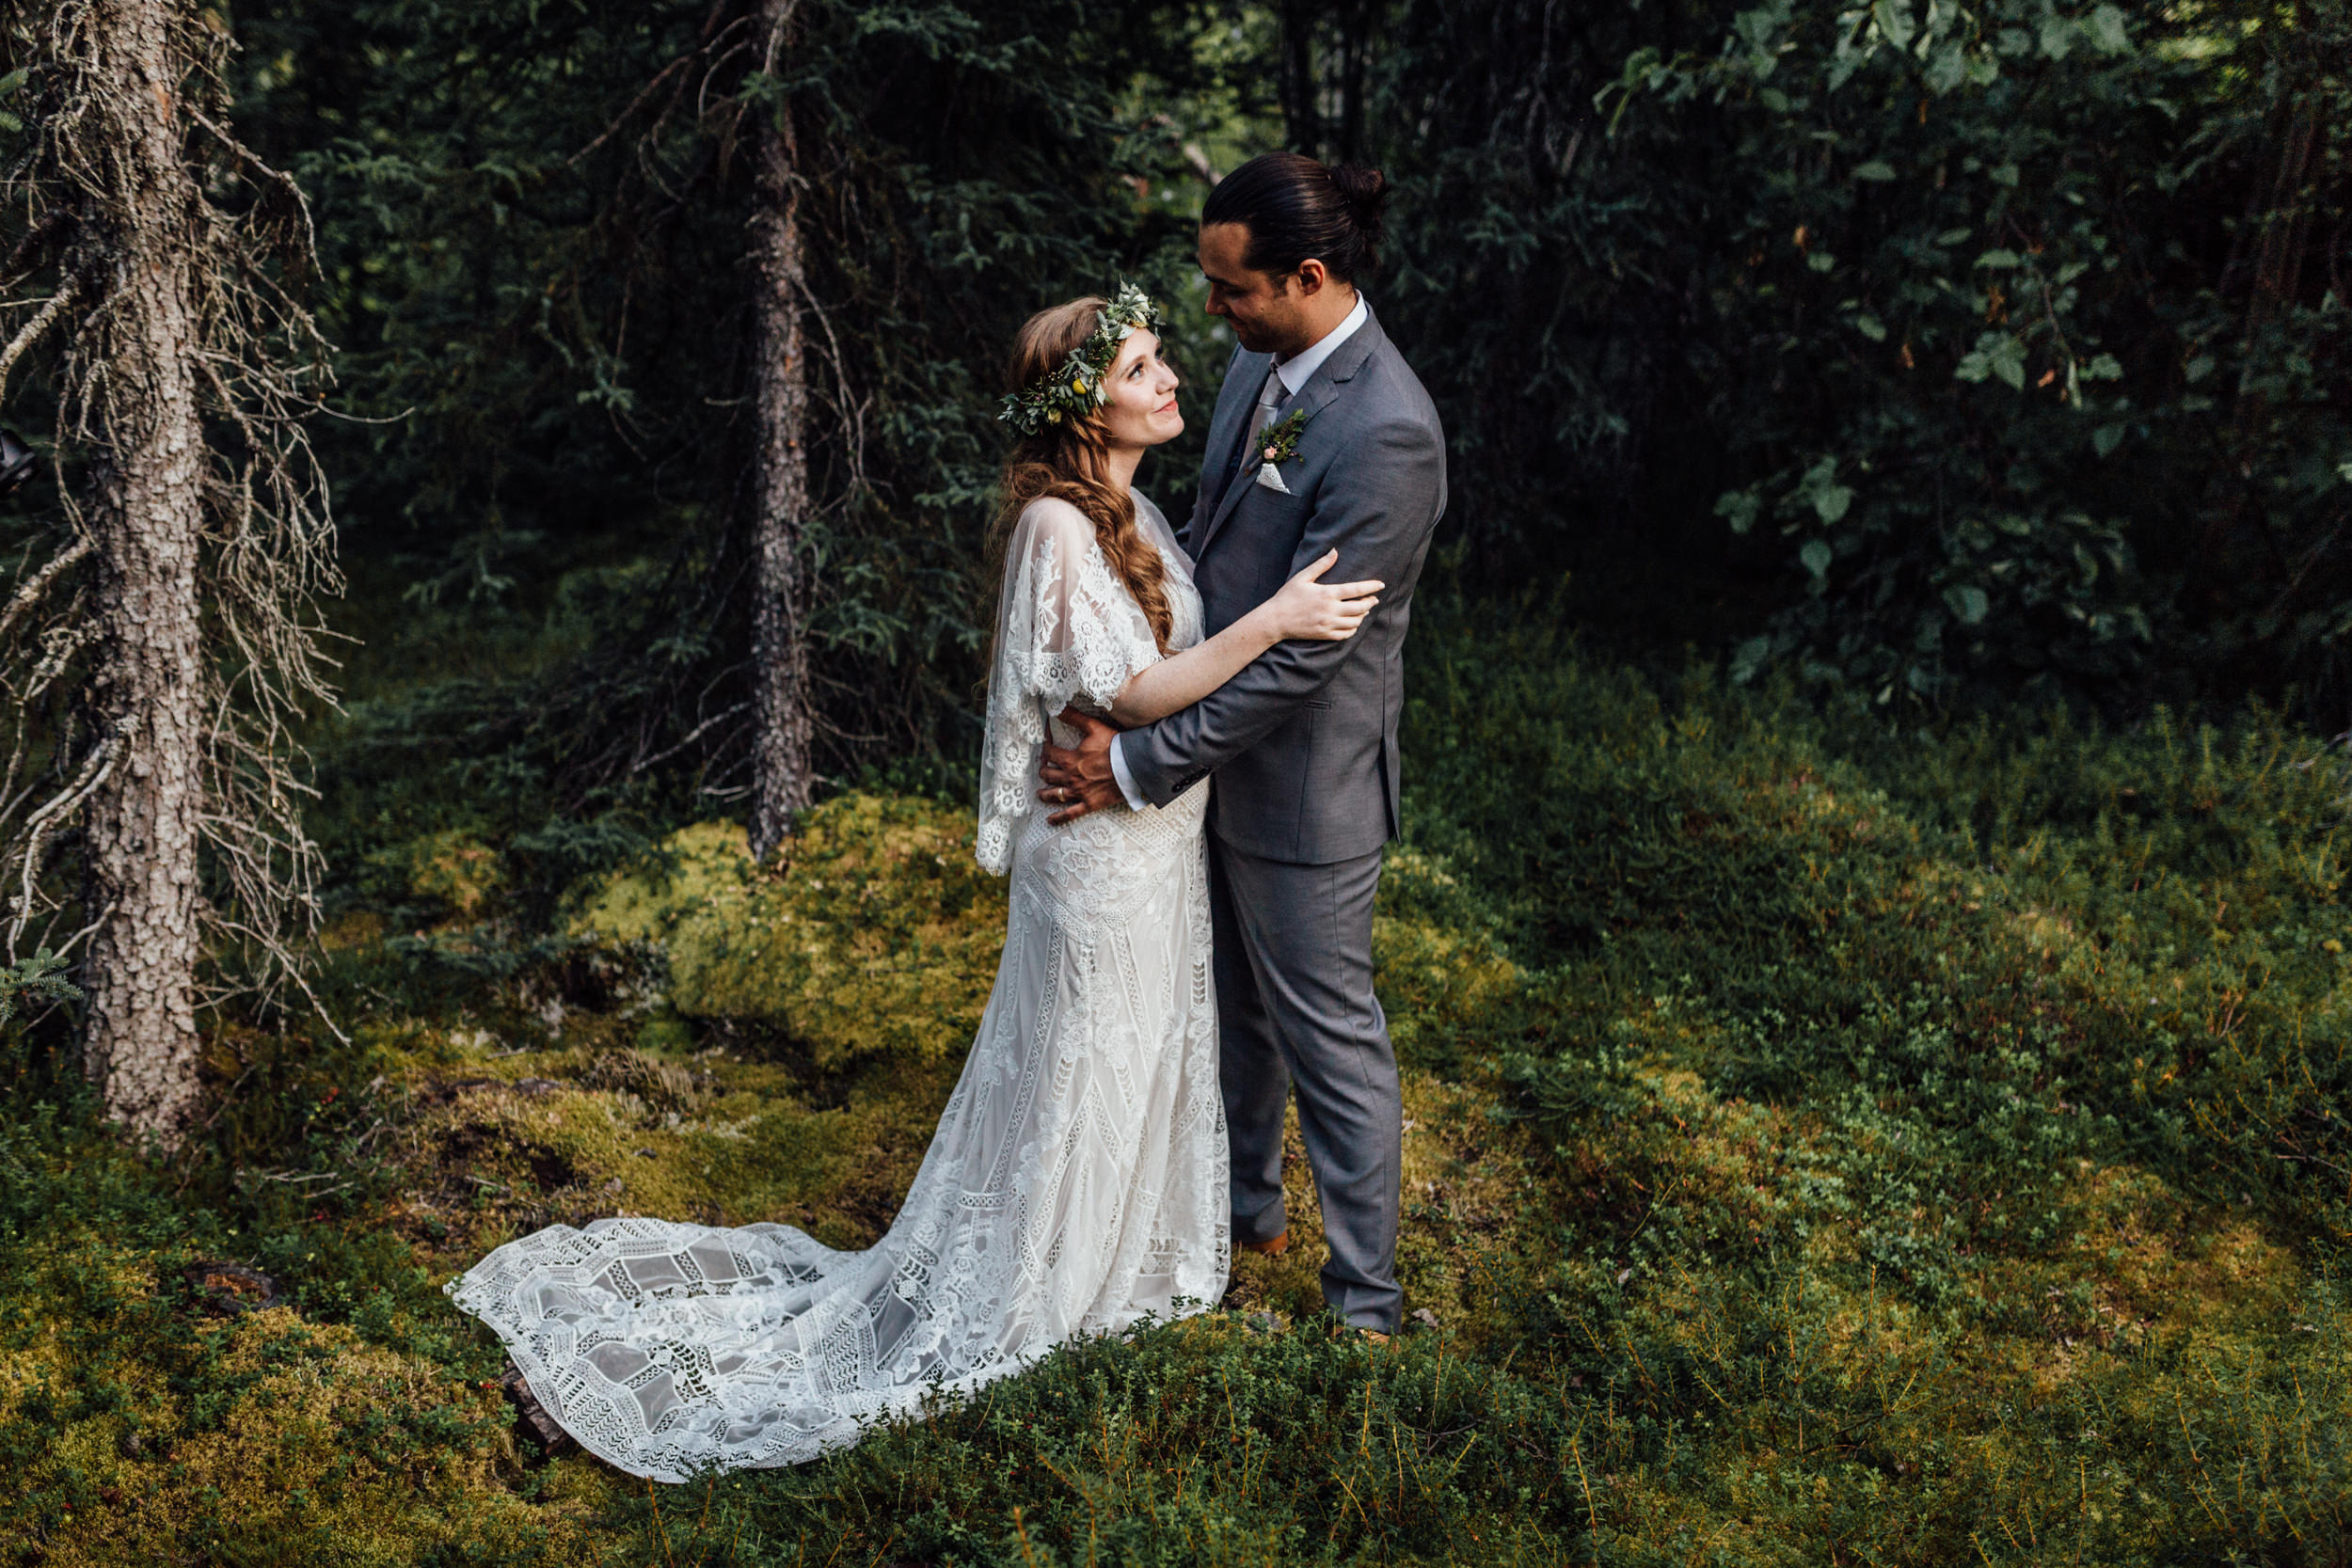 Intimate portrait in mossy Alaskan forest